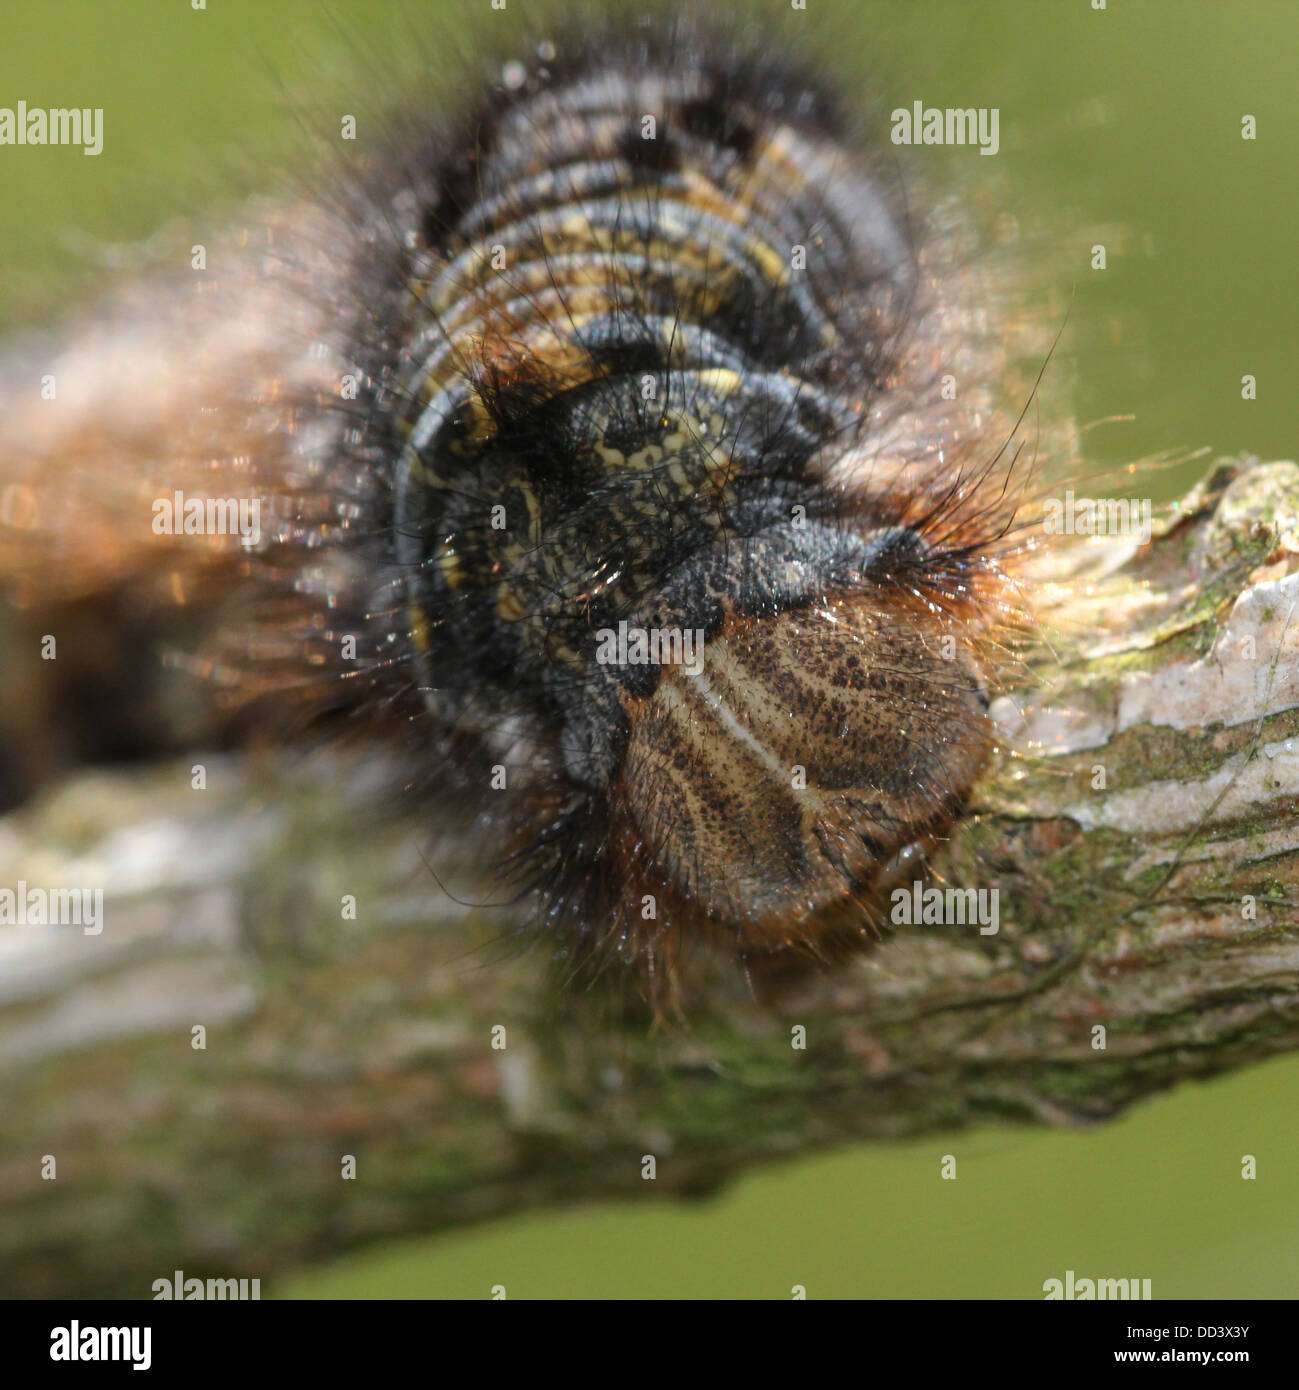 Series of 20 detailed close-ups of the Oak Eggar Moth (Lasiocampa quercus) in various poses - Stock Image